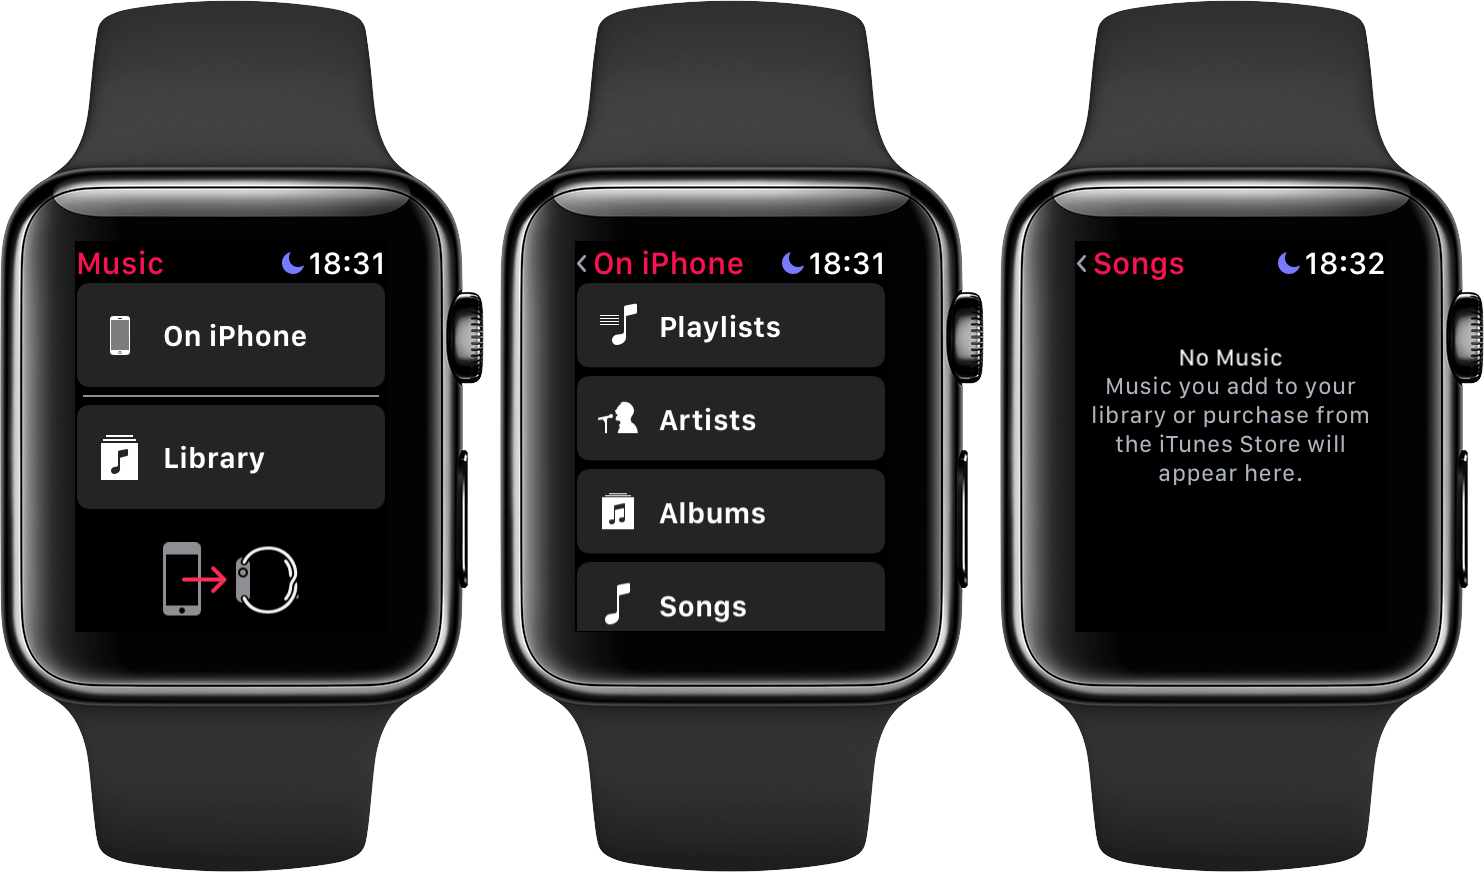 watchOS 4 3 has reinstated iPhone music library browsing